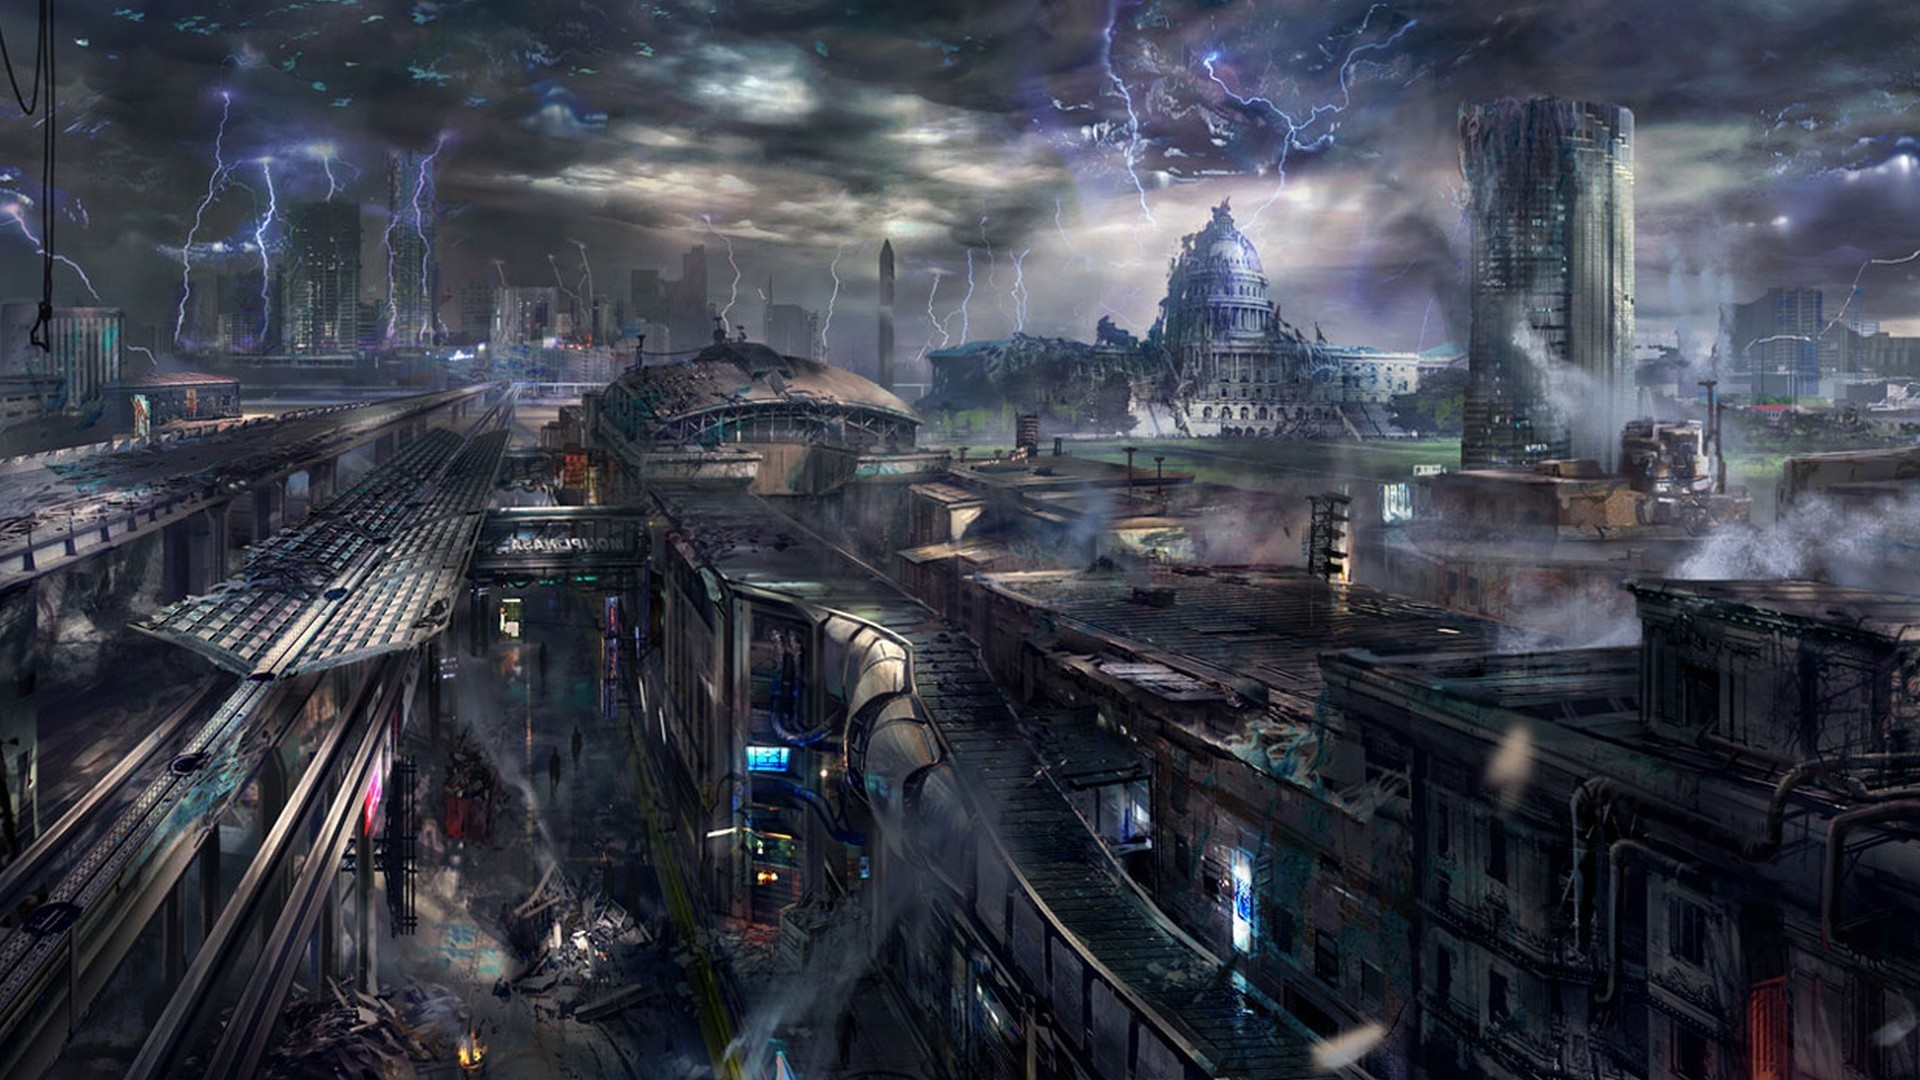 sci fi art fiction future street road building destroyed ... |Future Destroyed City